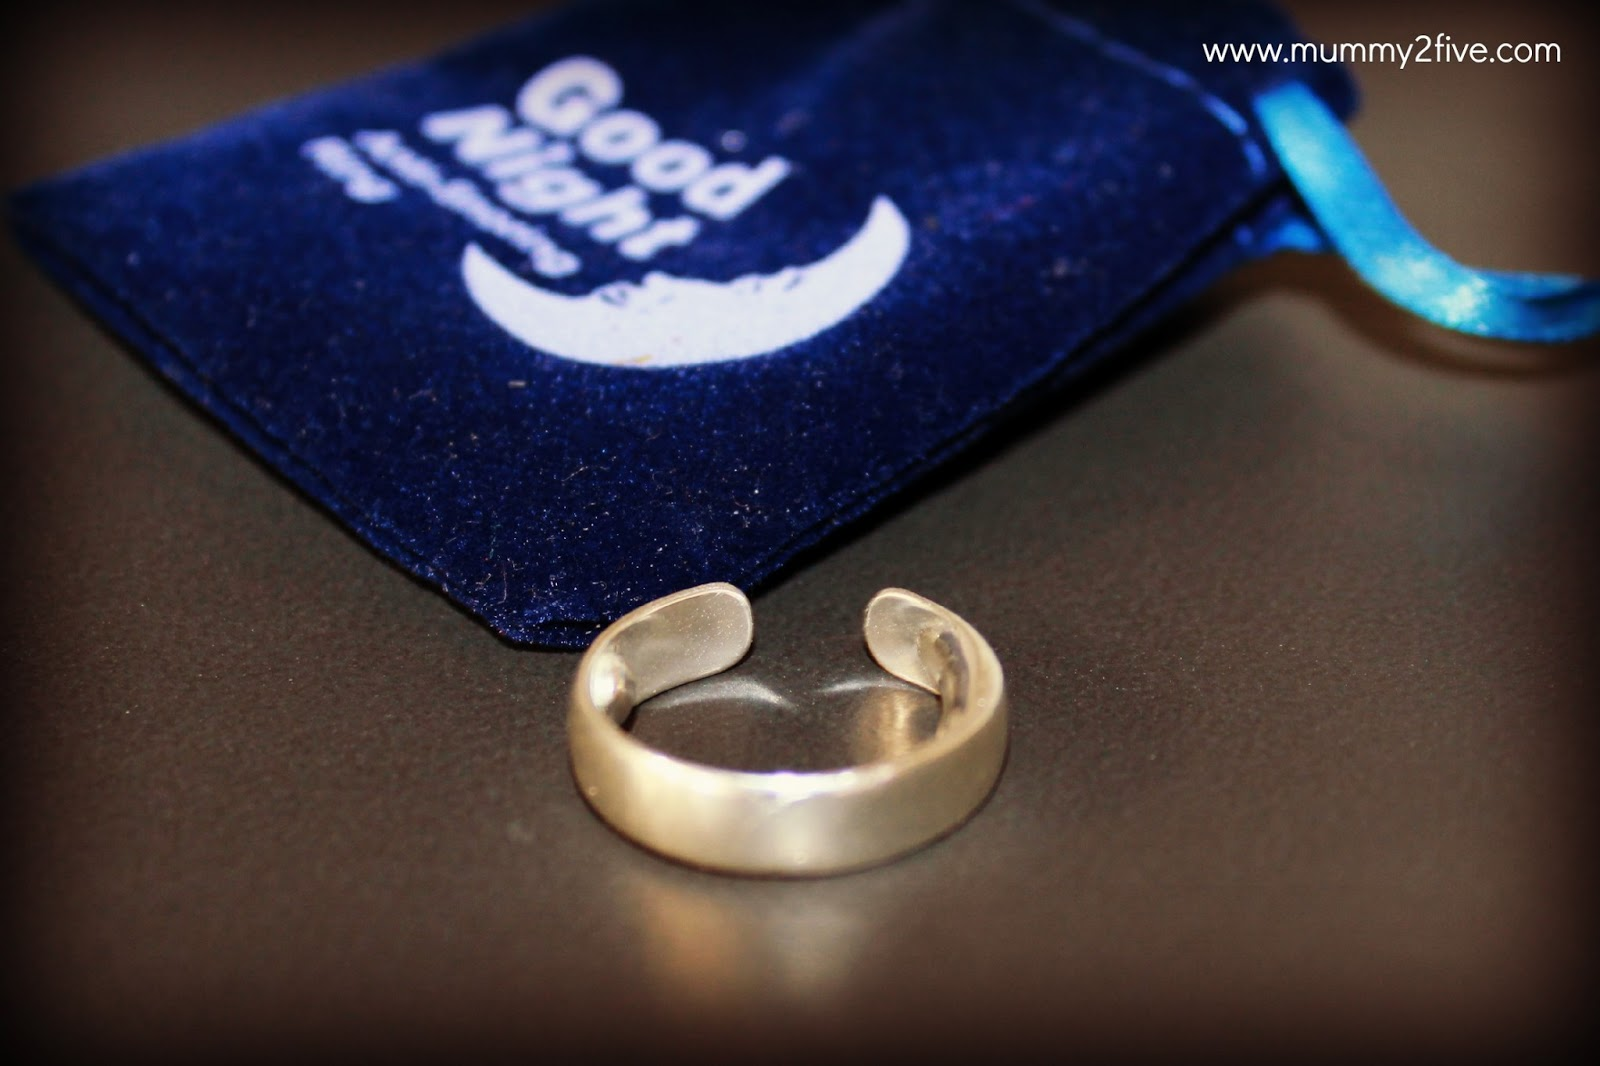 Goog Night Anti Snoring ring-1